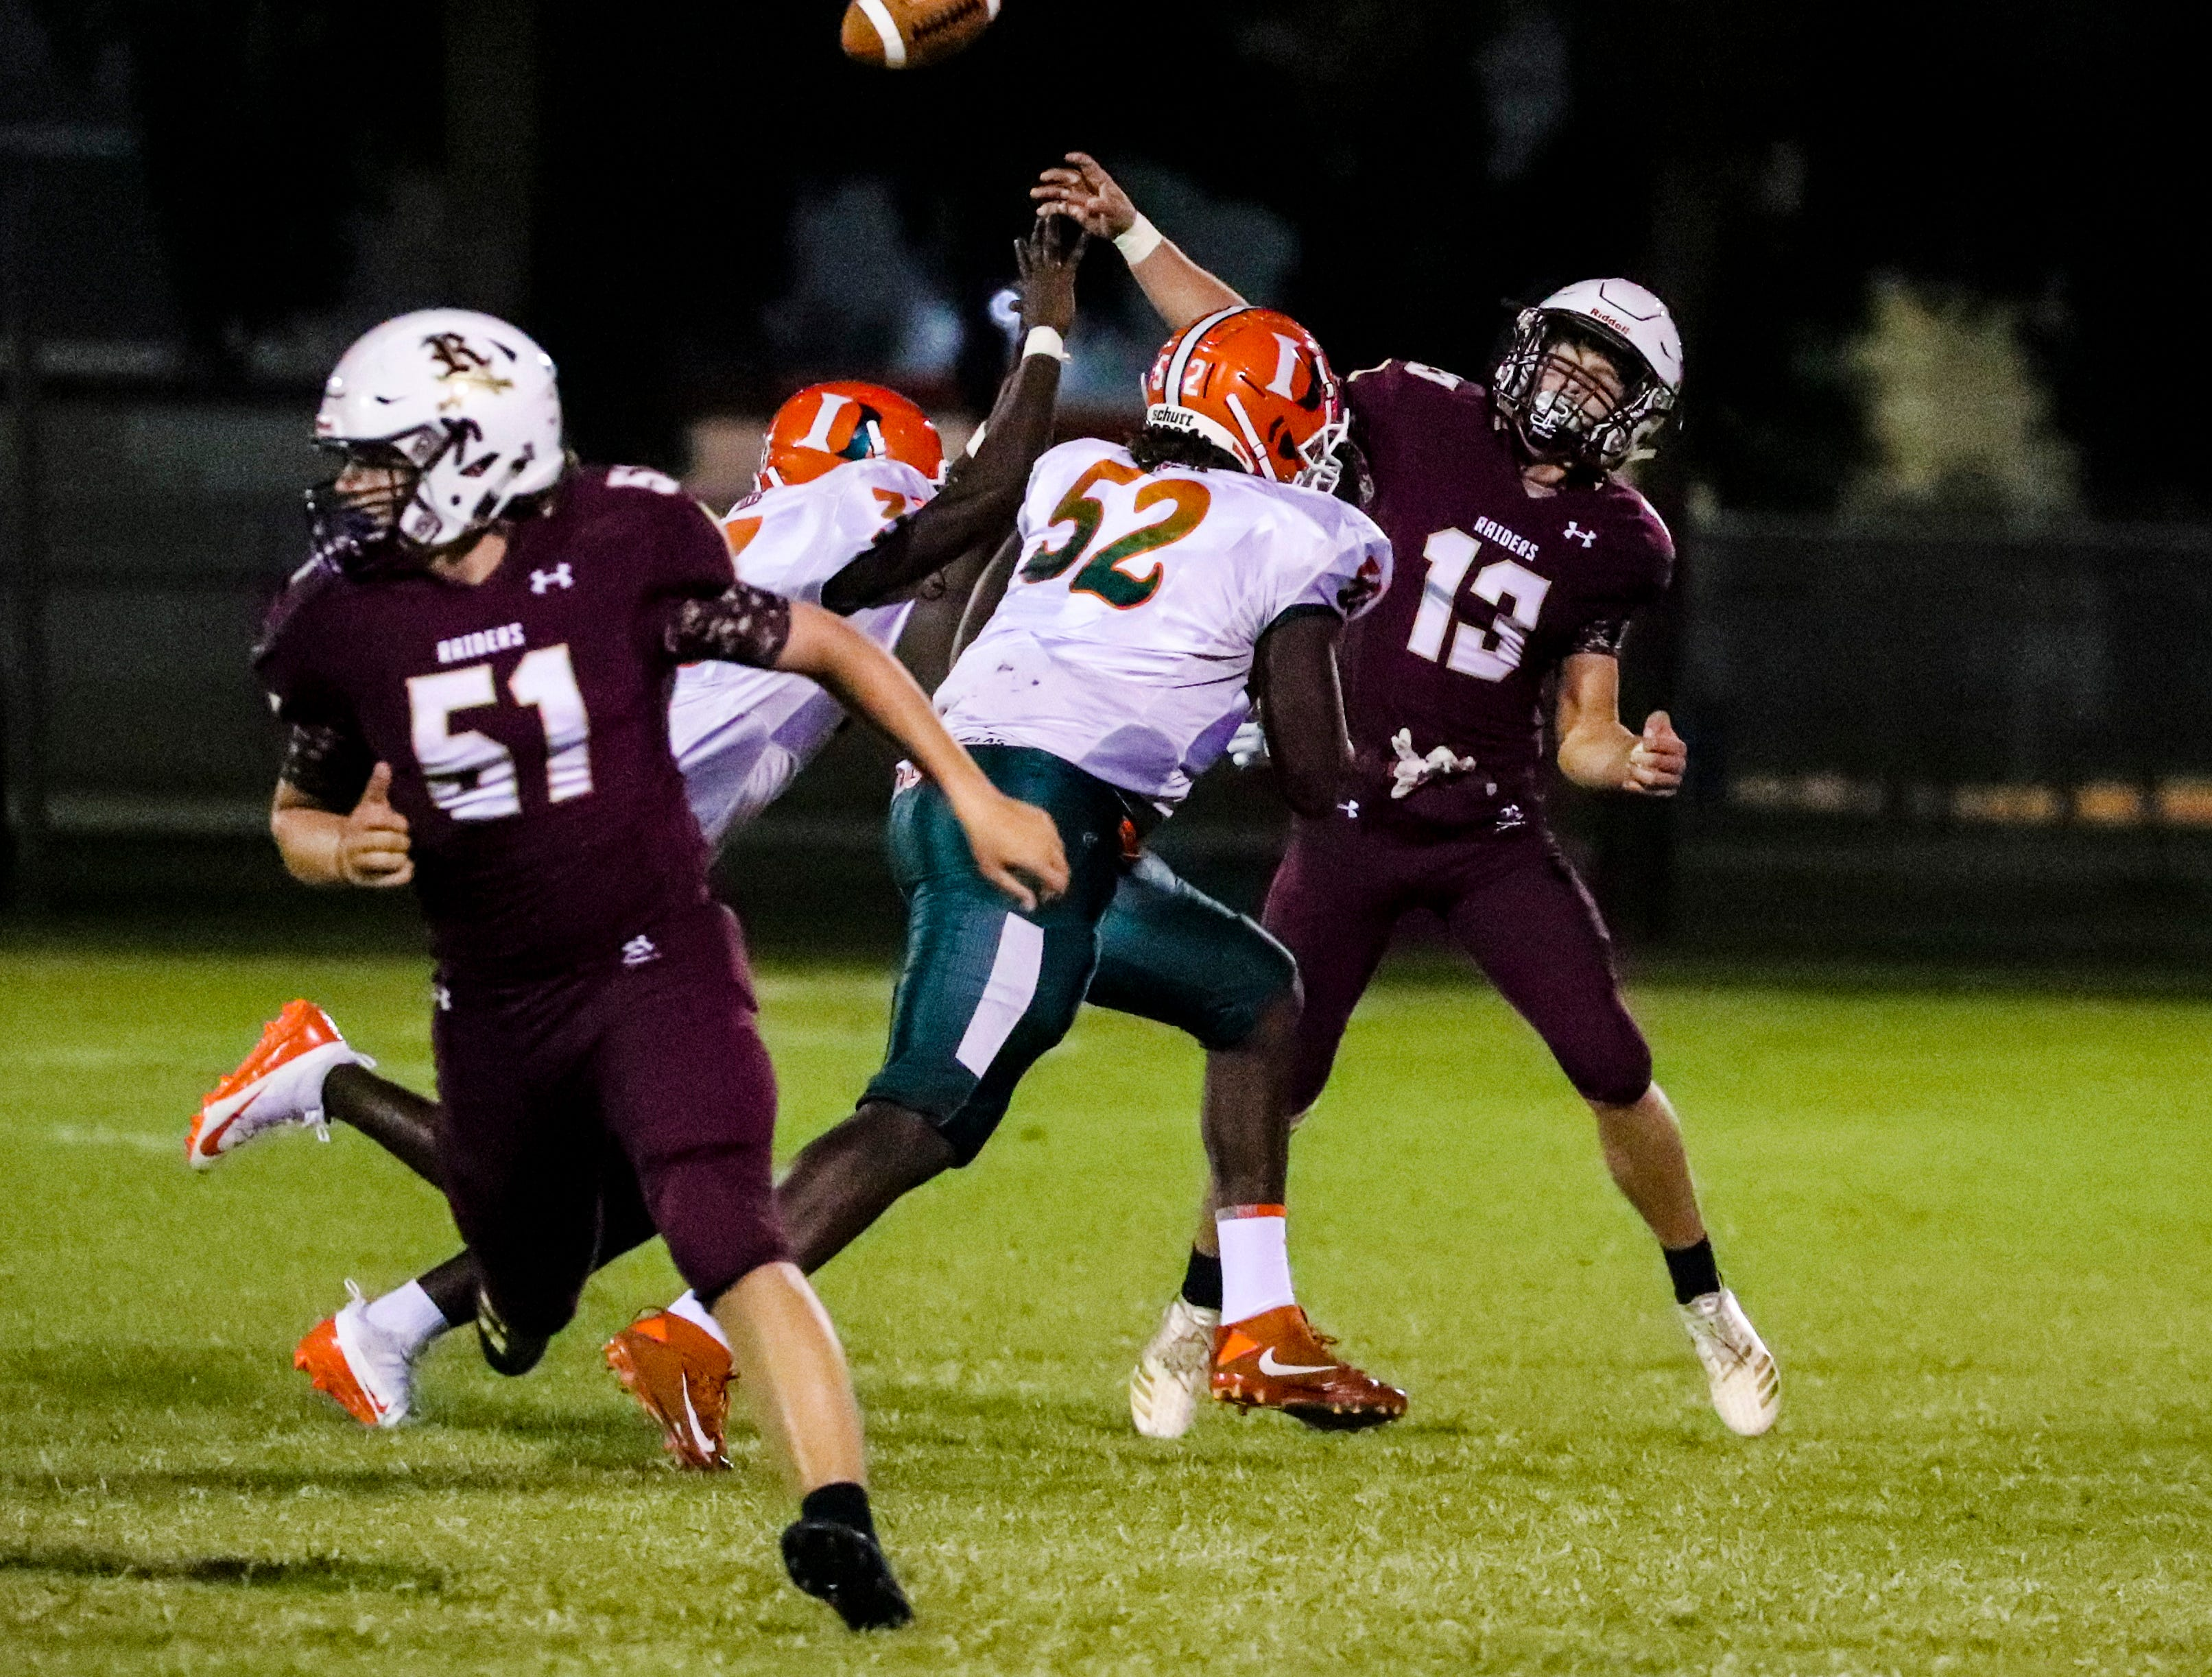 Riverdale QB Dylan Ulmer releases the pass under heavy pressure of Dunbar defense. Images from the Dunbar at Riverdale high school football game, Friday, September 8th, 2018.